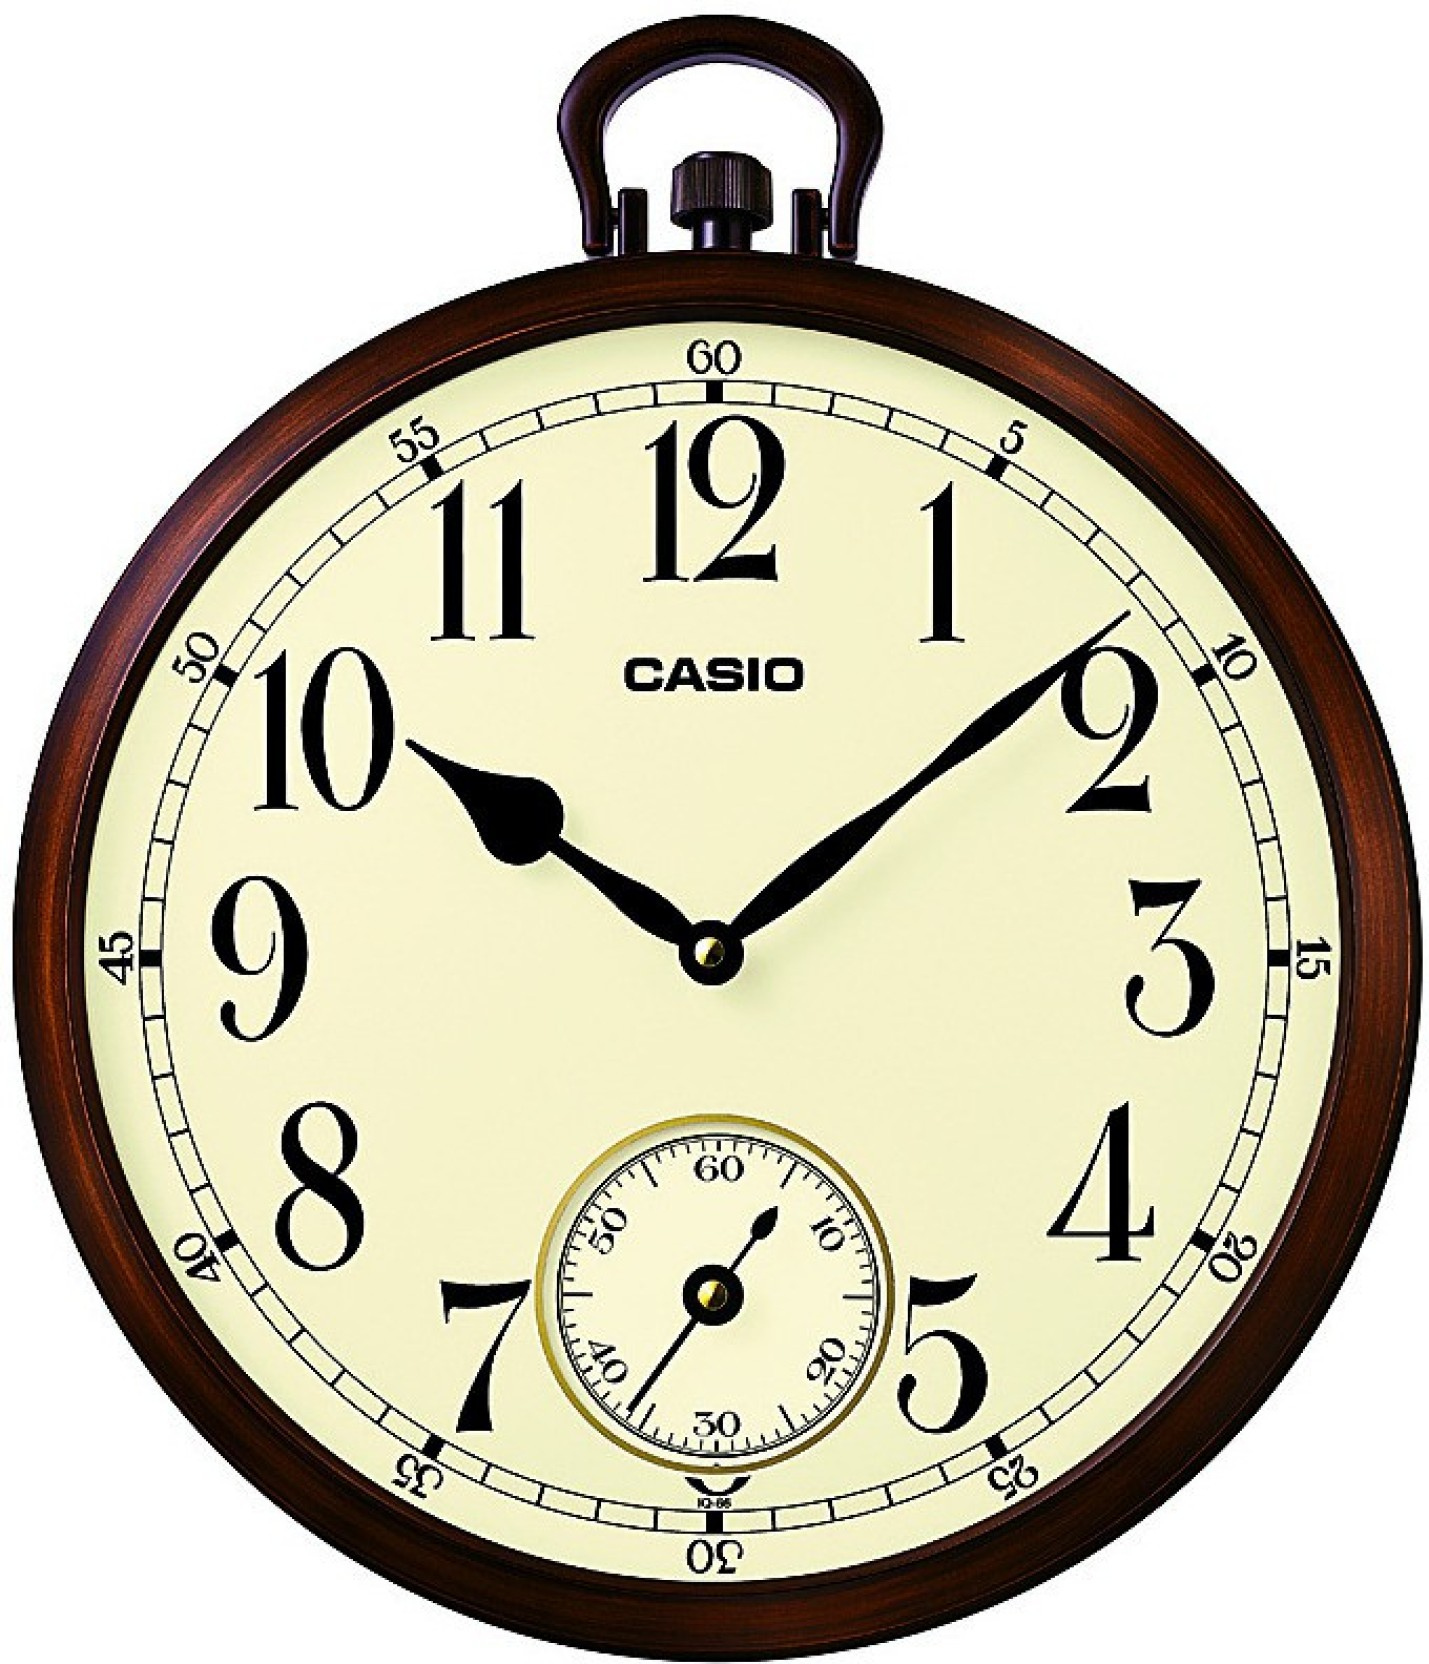 Casio Analog Wall Clock Price in India